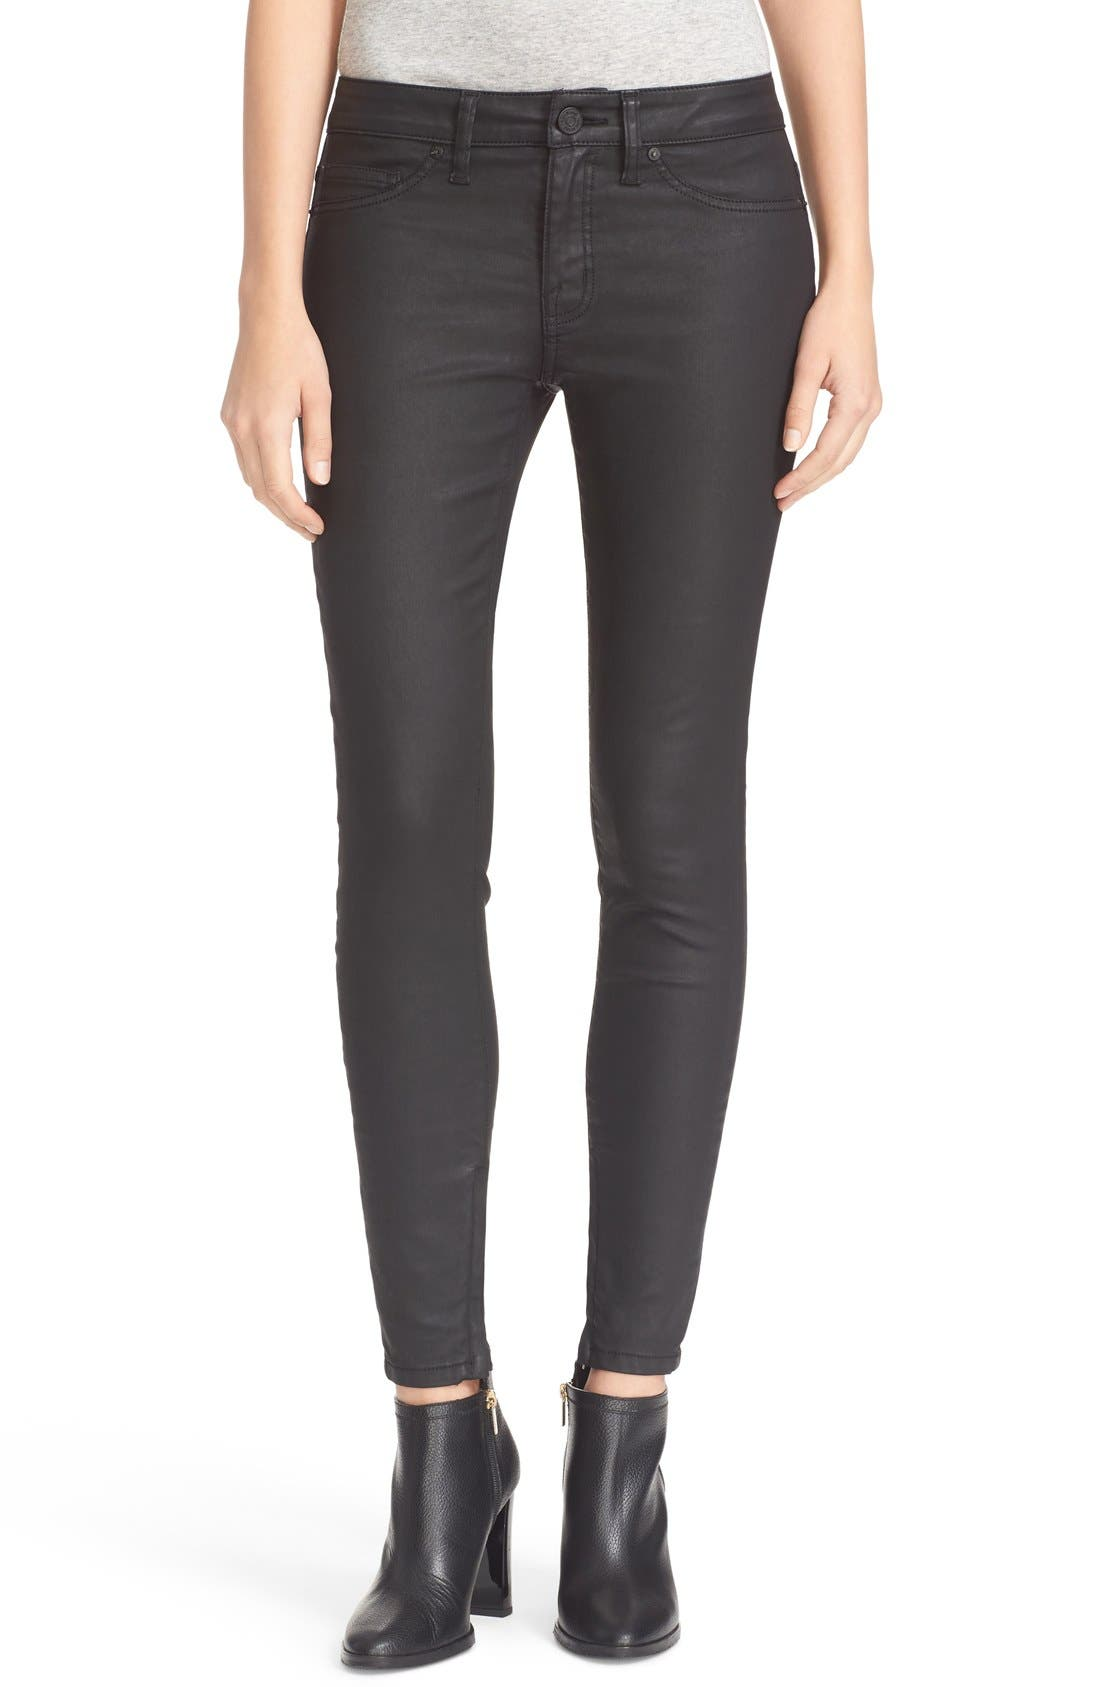 Alternate Image 1 Selected - Joie Ankle Zip Super Skinny Jeans (Black Diamond)